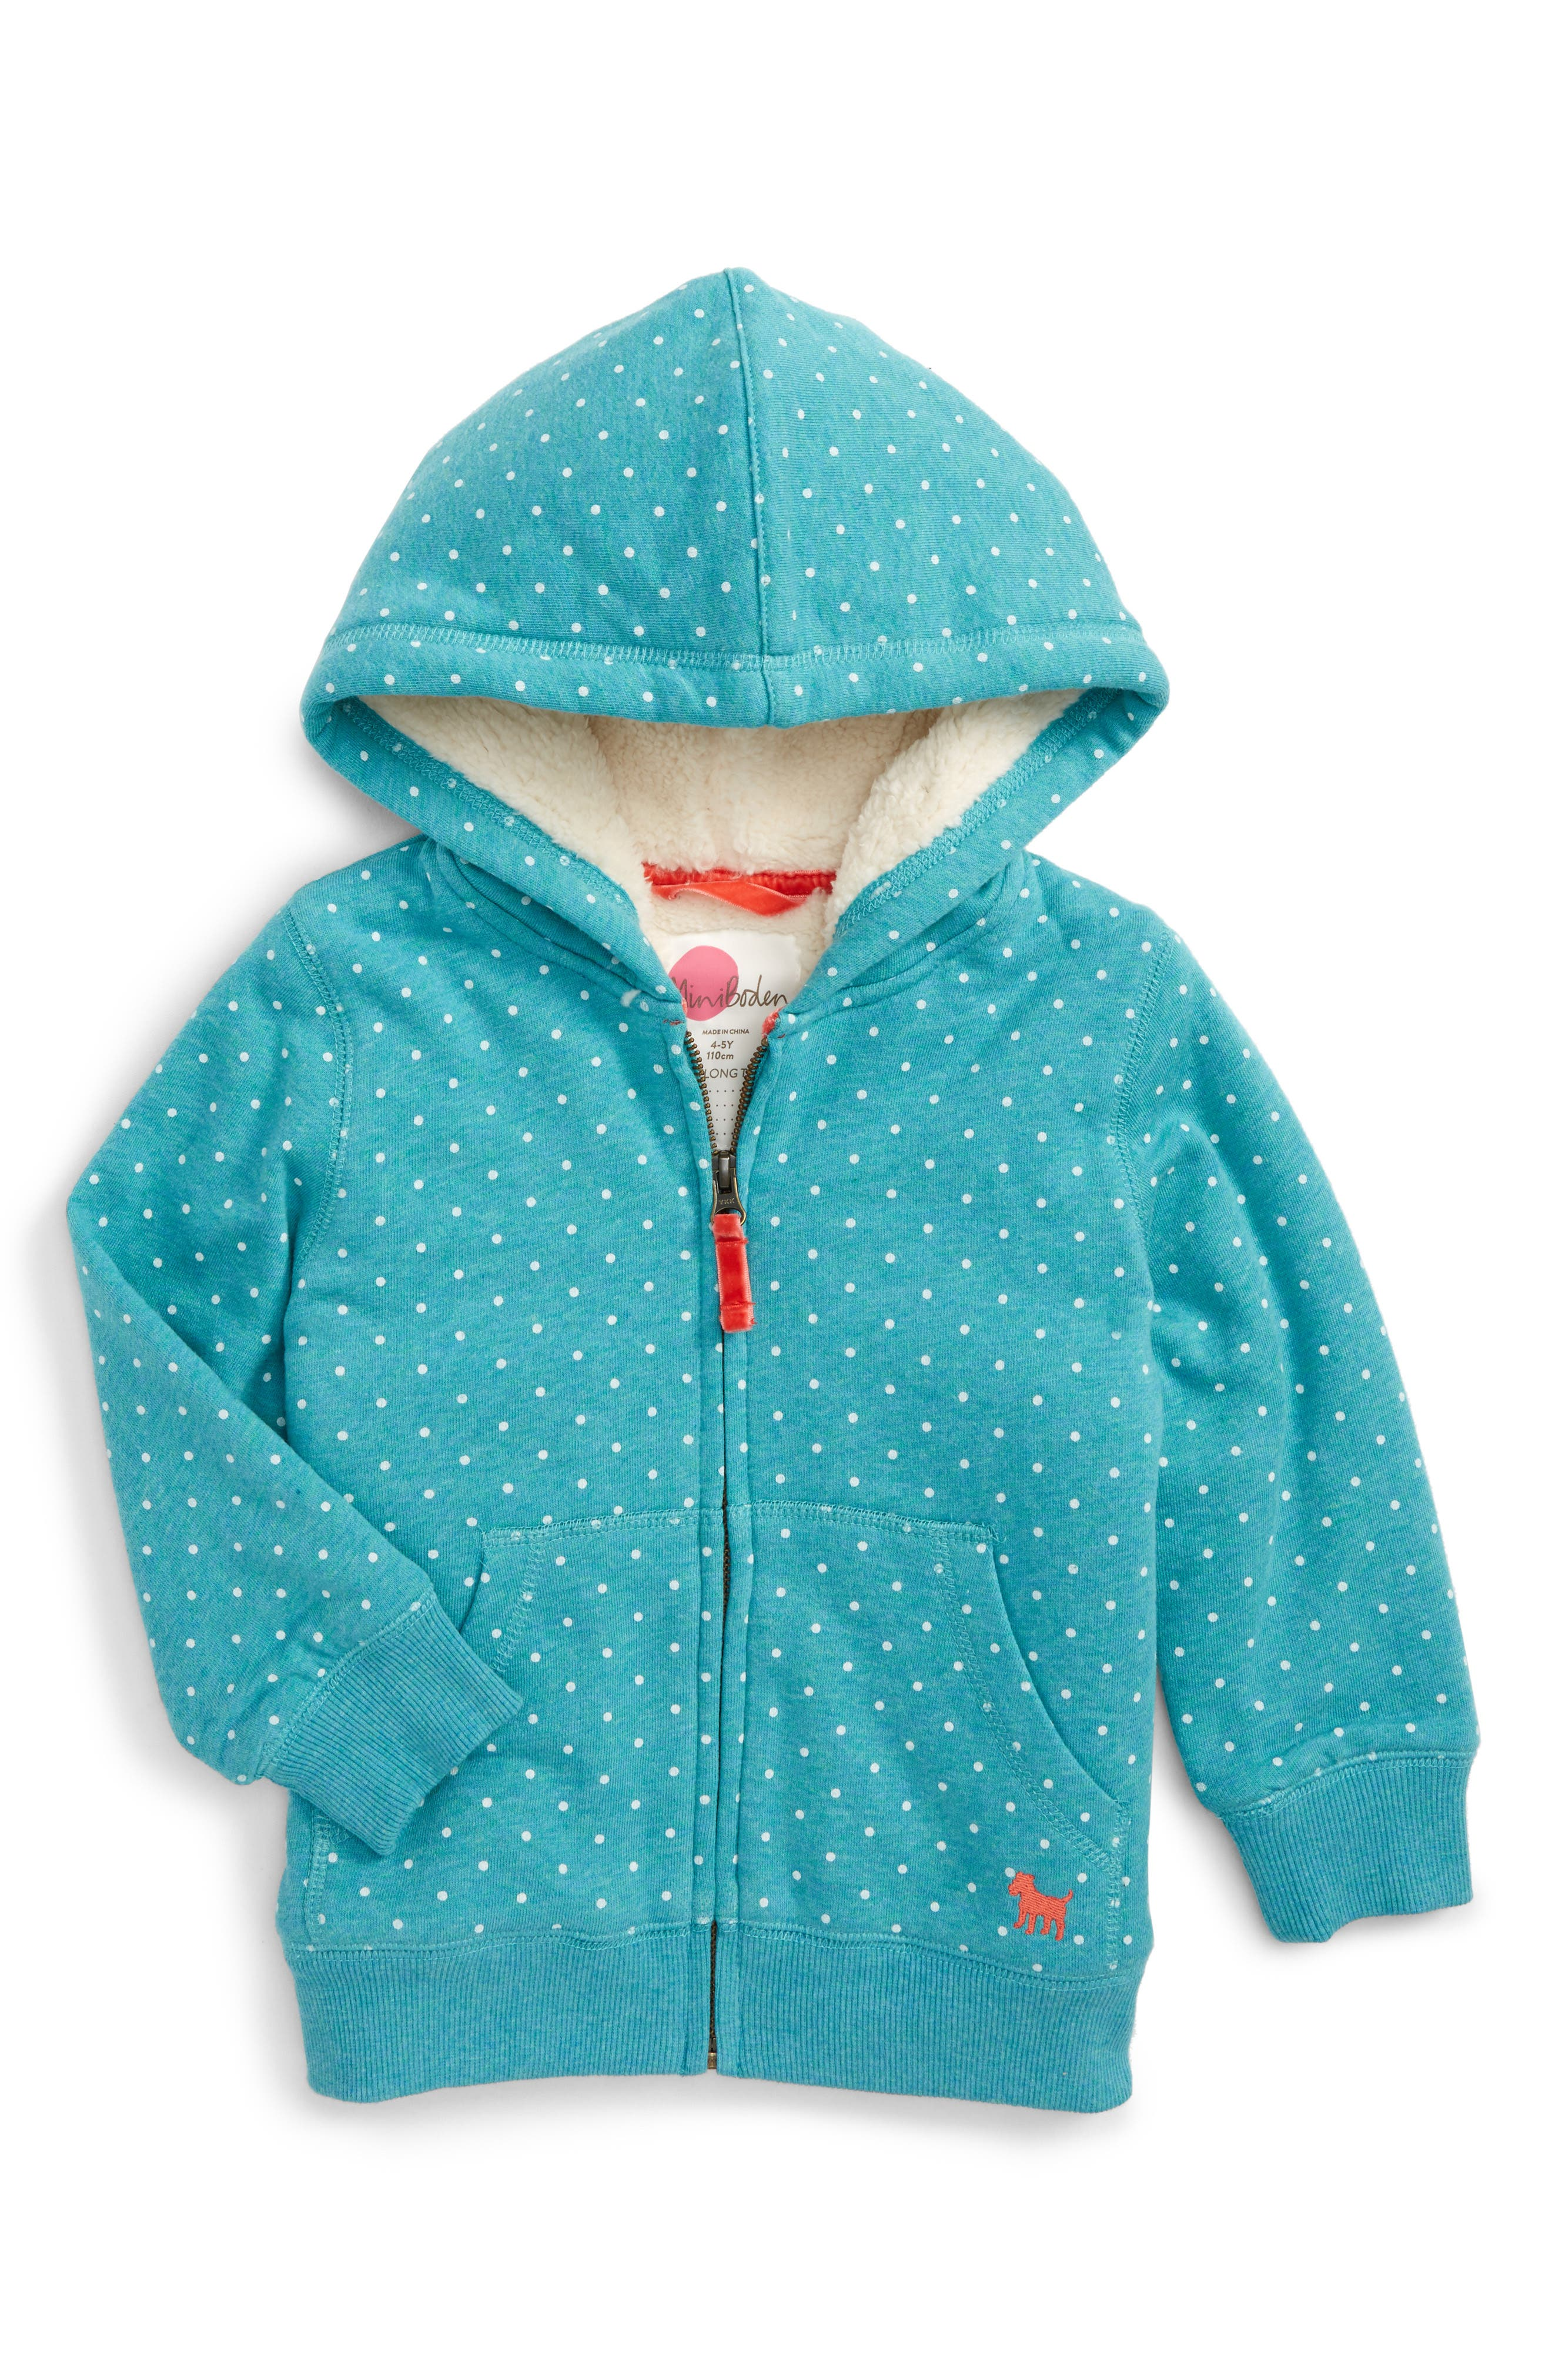 Boden Print Shaggy Lined Hoodie,                             Main thumbnail 3, color,